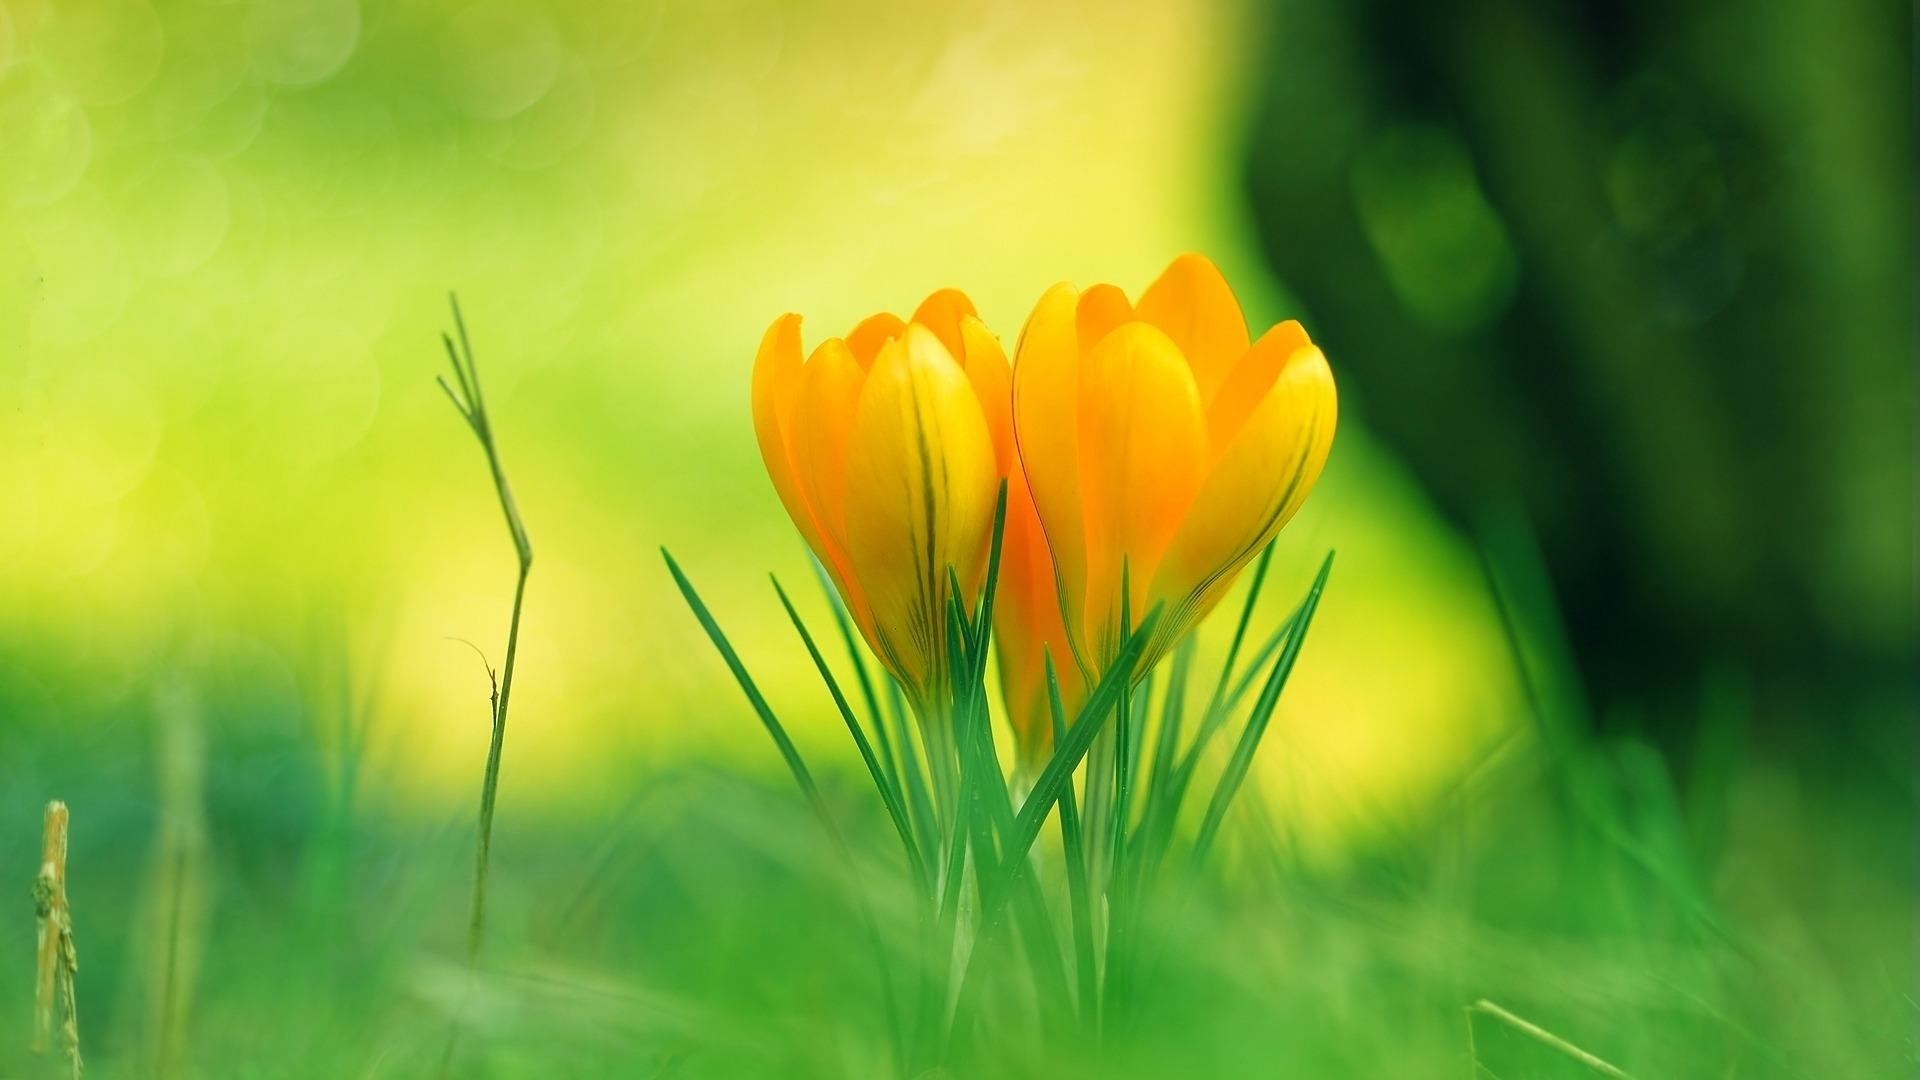 wallpaper flowers baby yellow flower wallpapers images 1920x1080